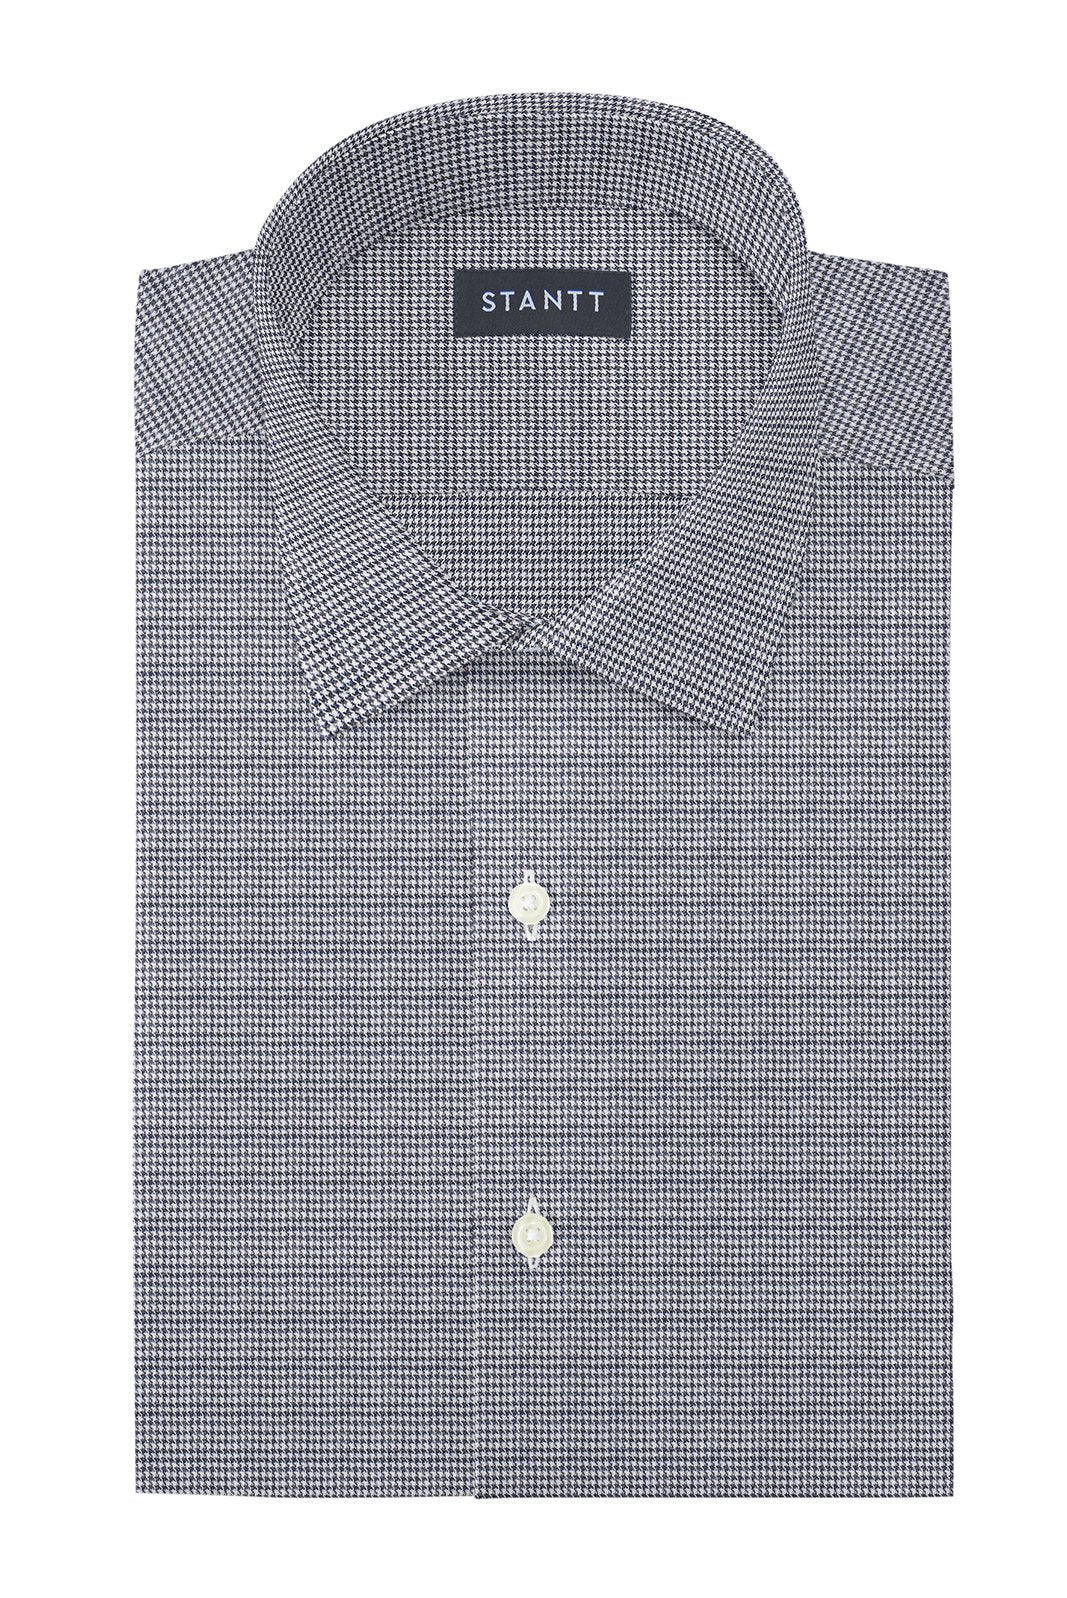 Grey Houndstooth Flannel: Modified-Spread Collar, Barrel Cuff